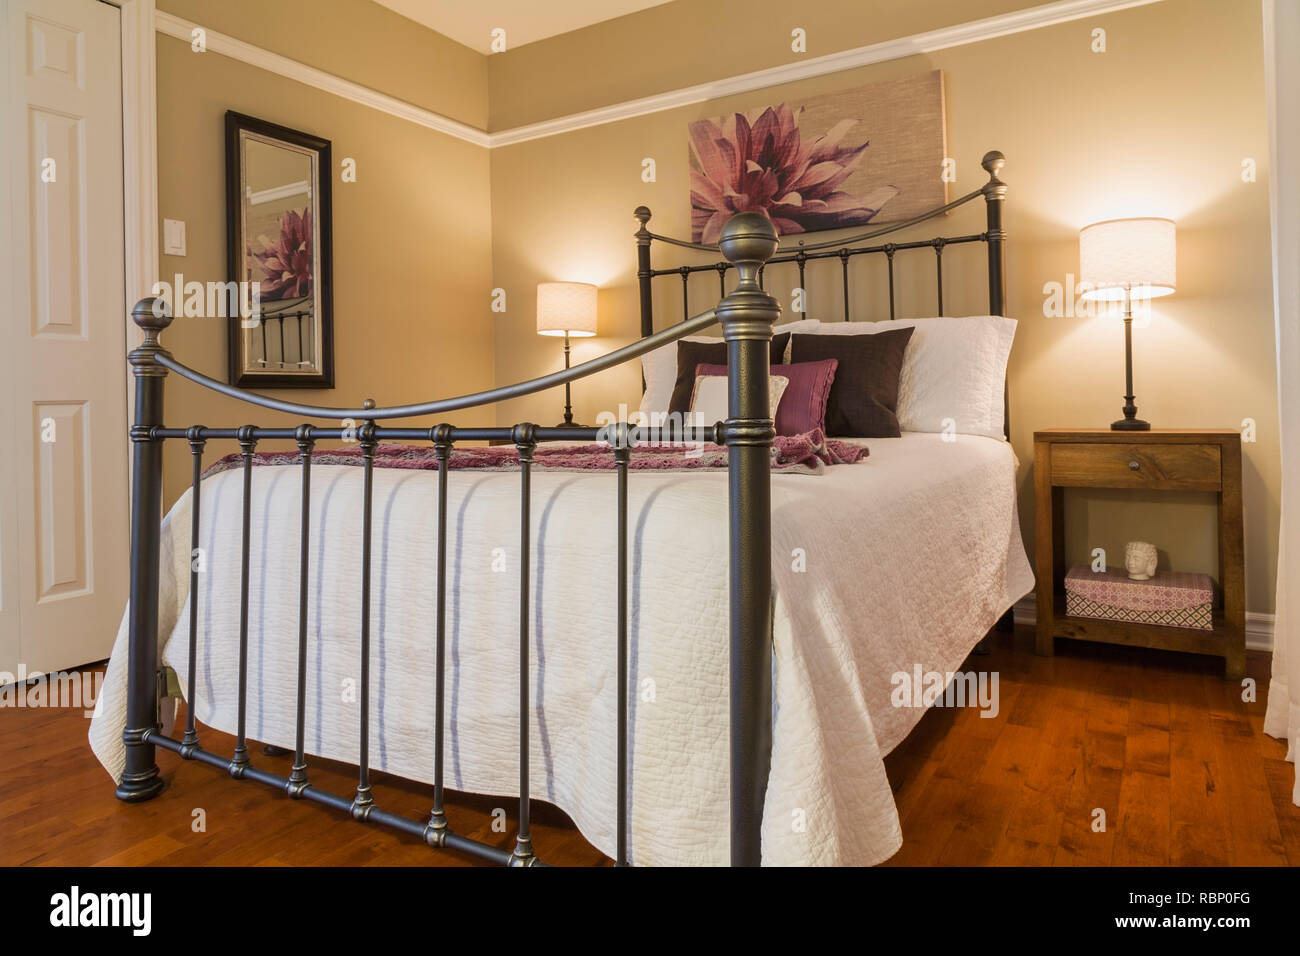 Queen Size Bed With White Bedspread And Antique Wrought Iron